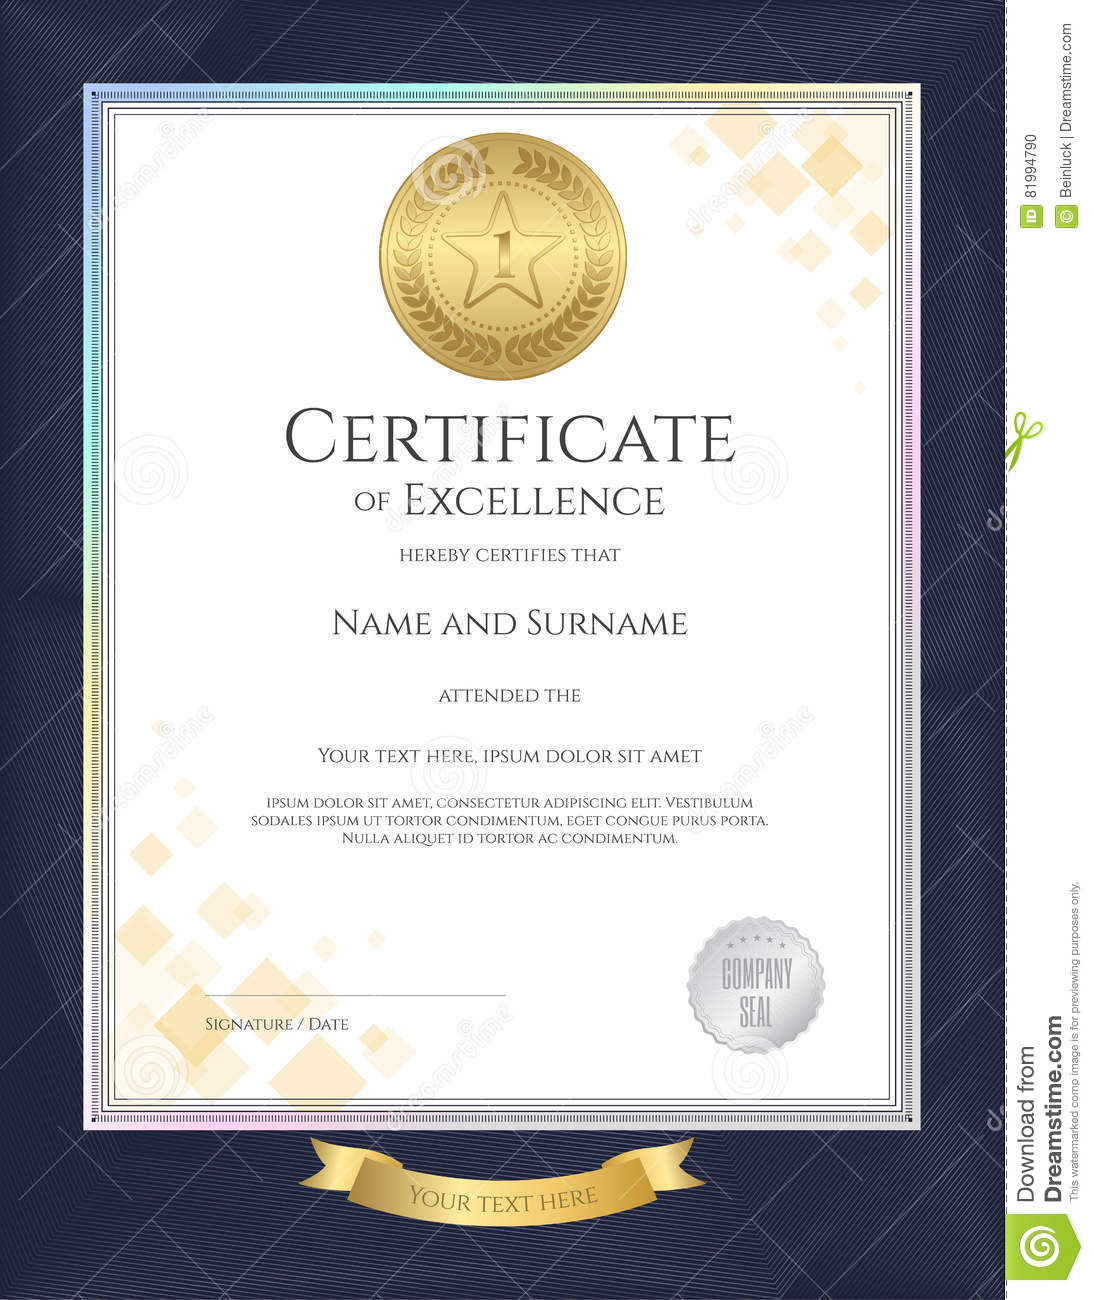 Elegant portrait certificate template for excellence achievement royalty free vector download elegant portrait certificate template xflitez Gallery